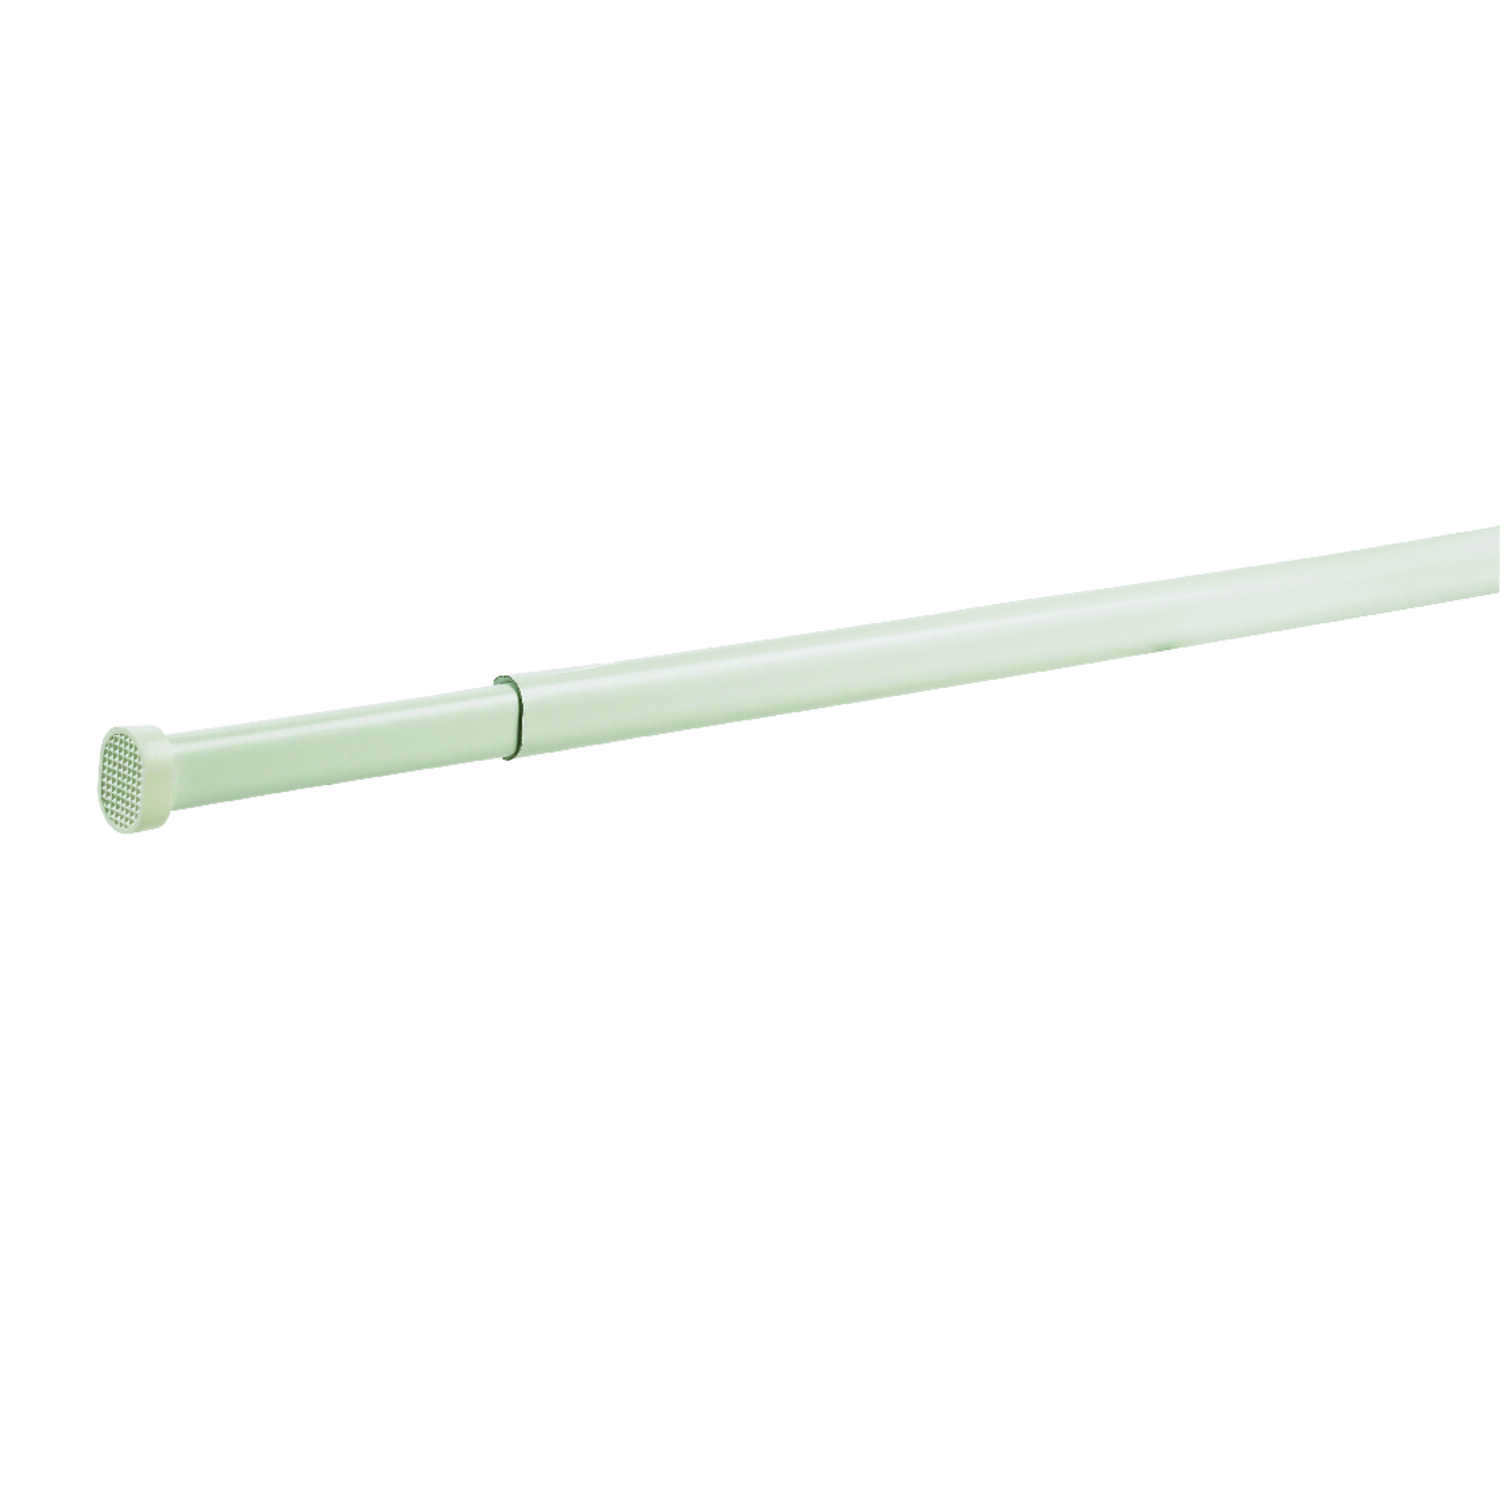 Kenney  Enamel  White  Tension Rod  22 in. L x 36 in. L